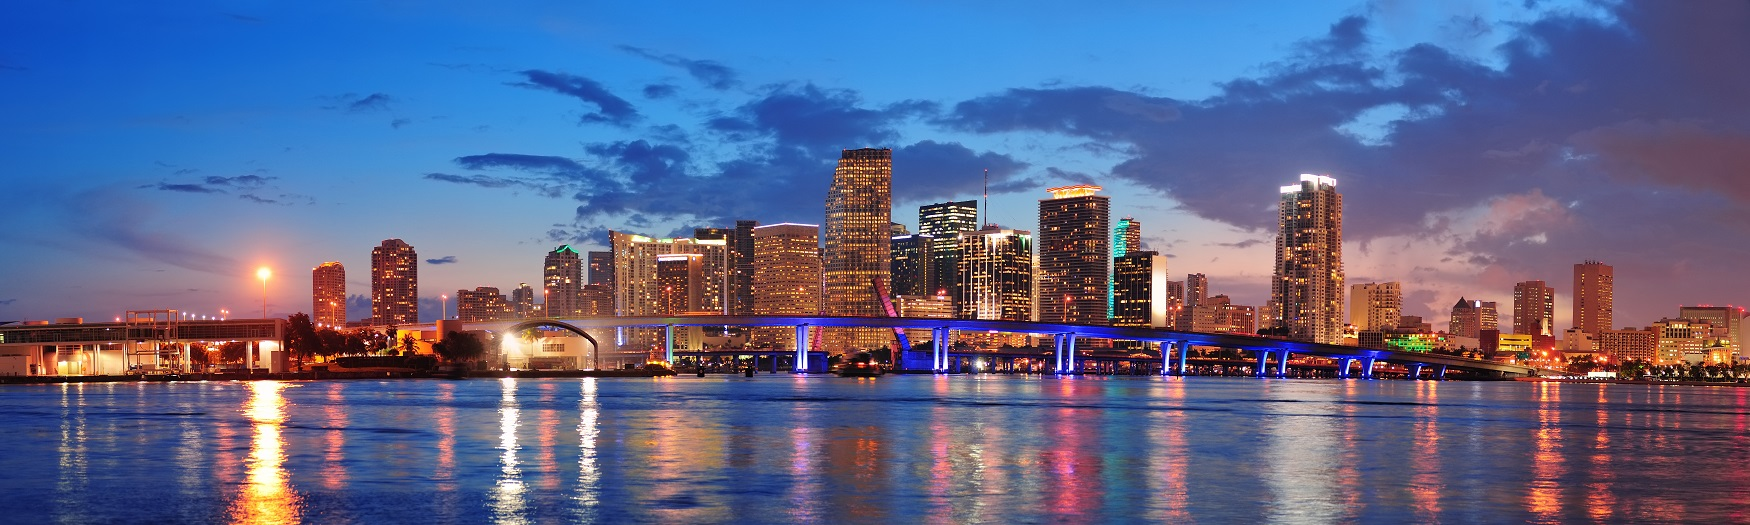 Sunset photo of the skyline in Miami with skyscrapers, bridge, sea and lots of lights.